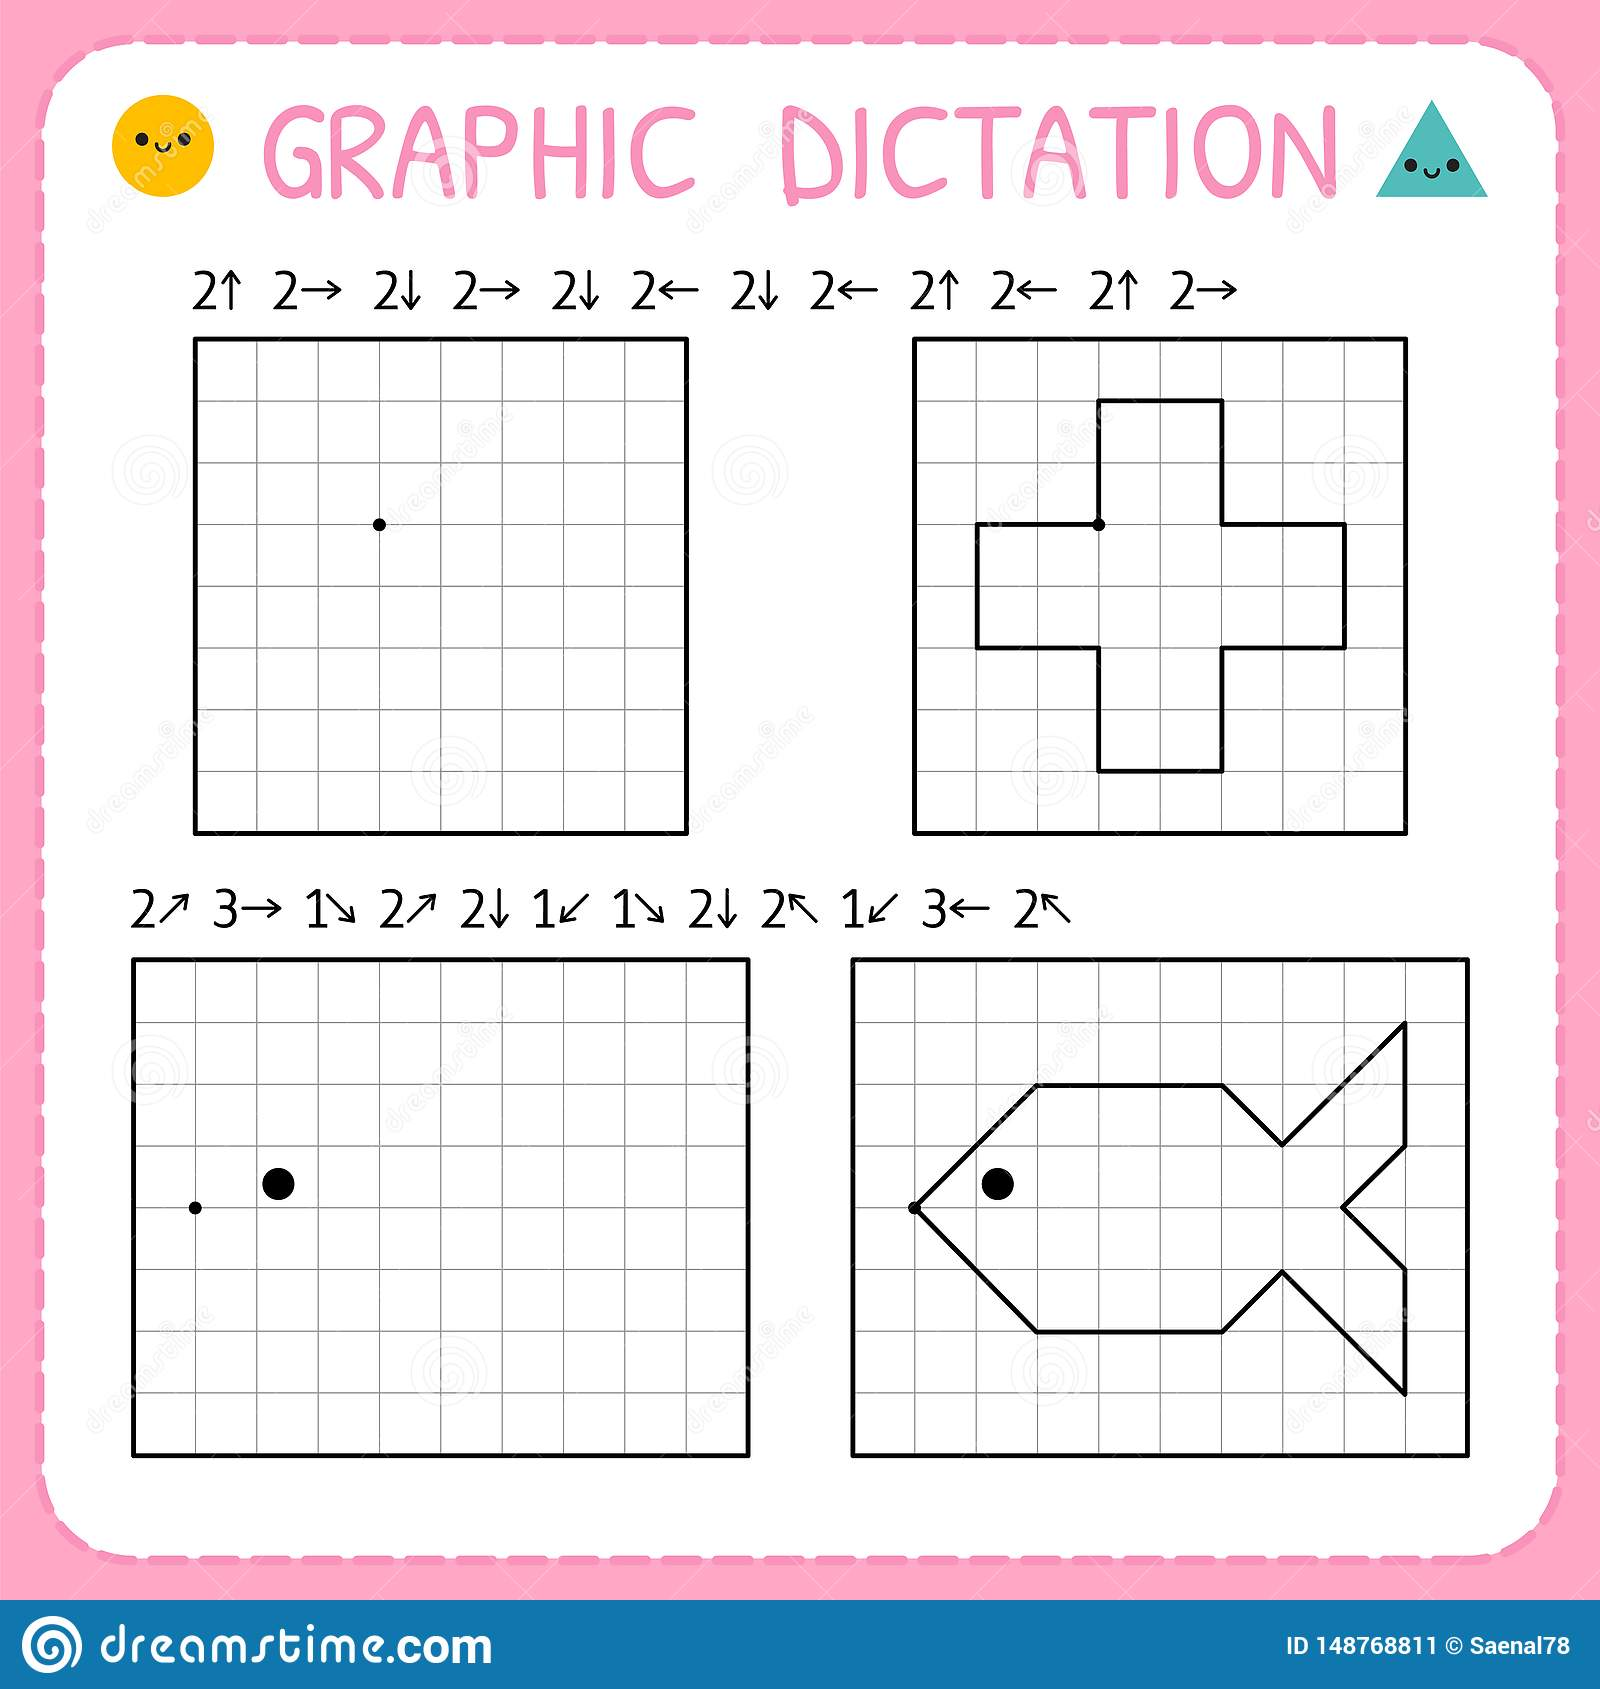 Graphic Dictation Kindergarten Educational Game For Kids